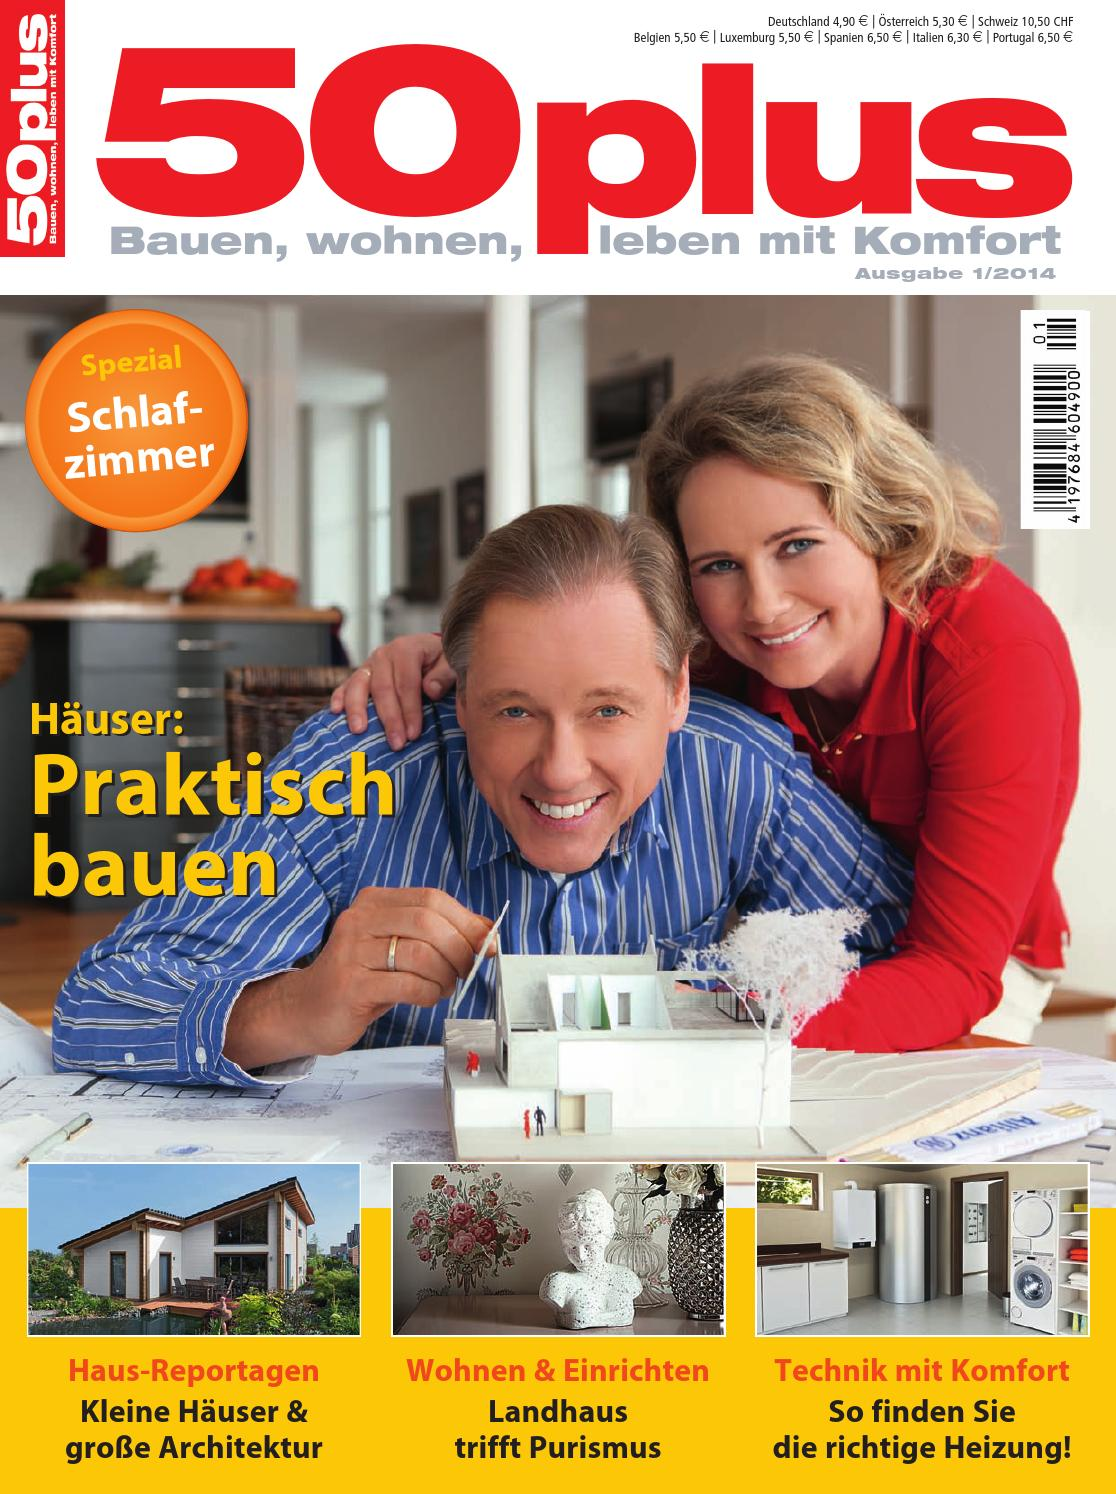 Familyhome 1/2 2017 by family home verlag gmbh   issuu